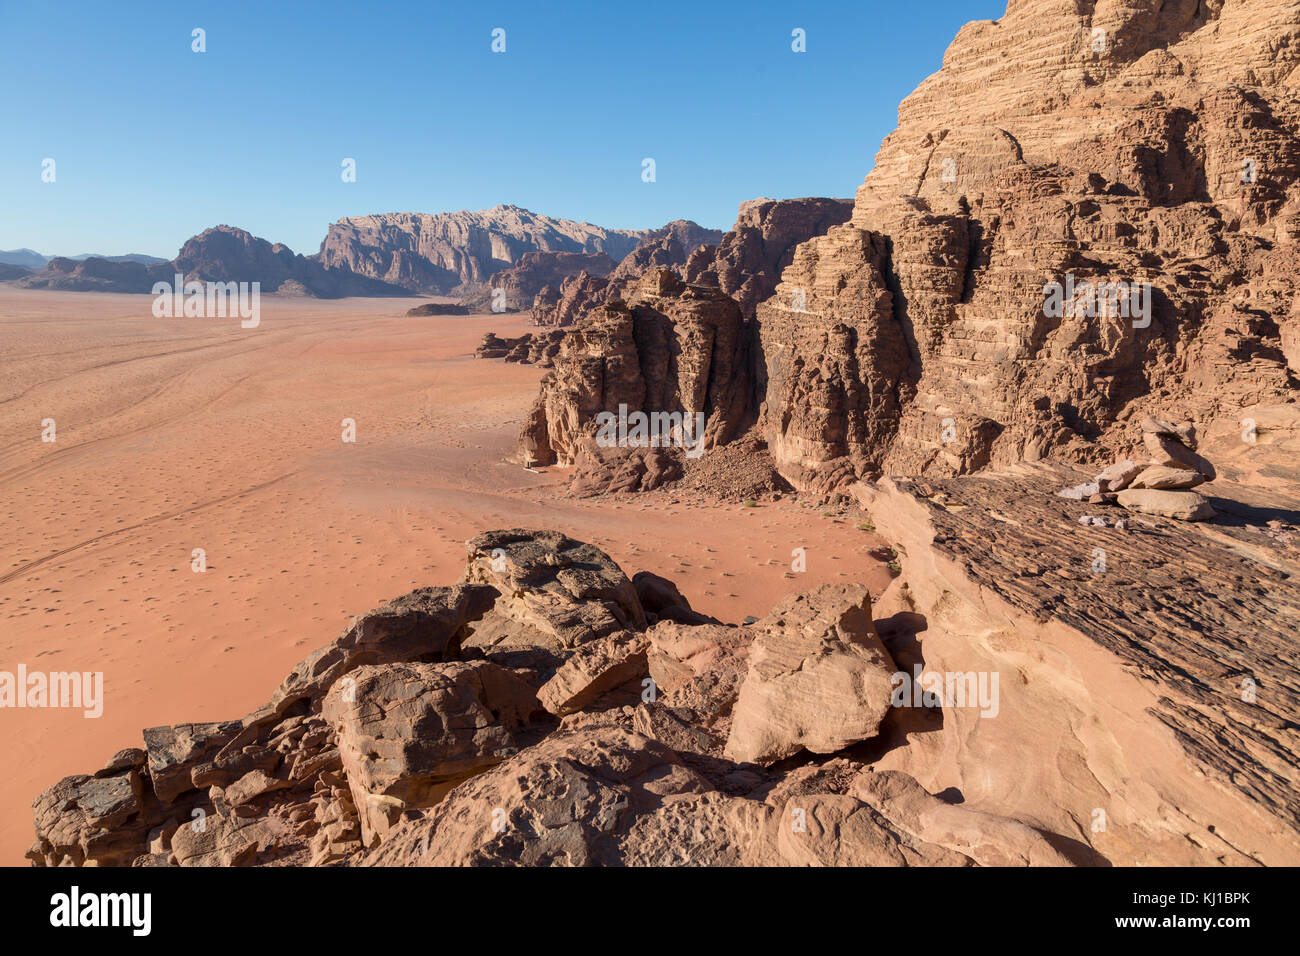 Reddish sand and rock landscapes in the desert of Wadi Rum, southern Jordan - Stock Image